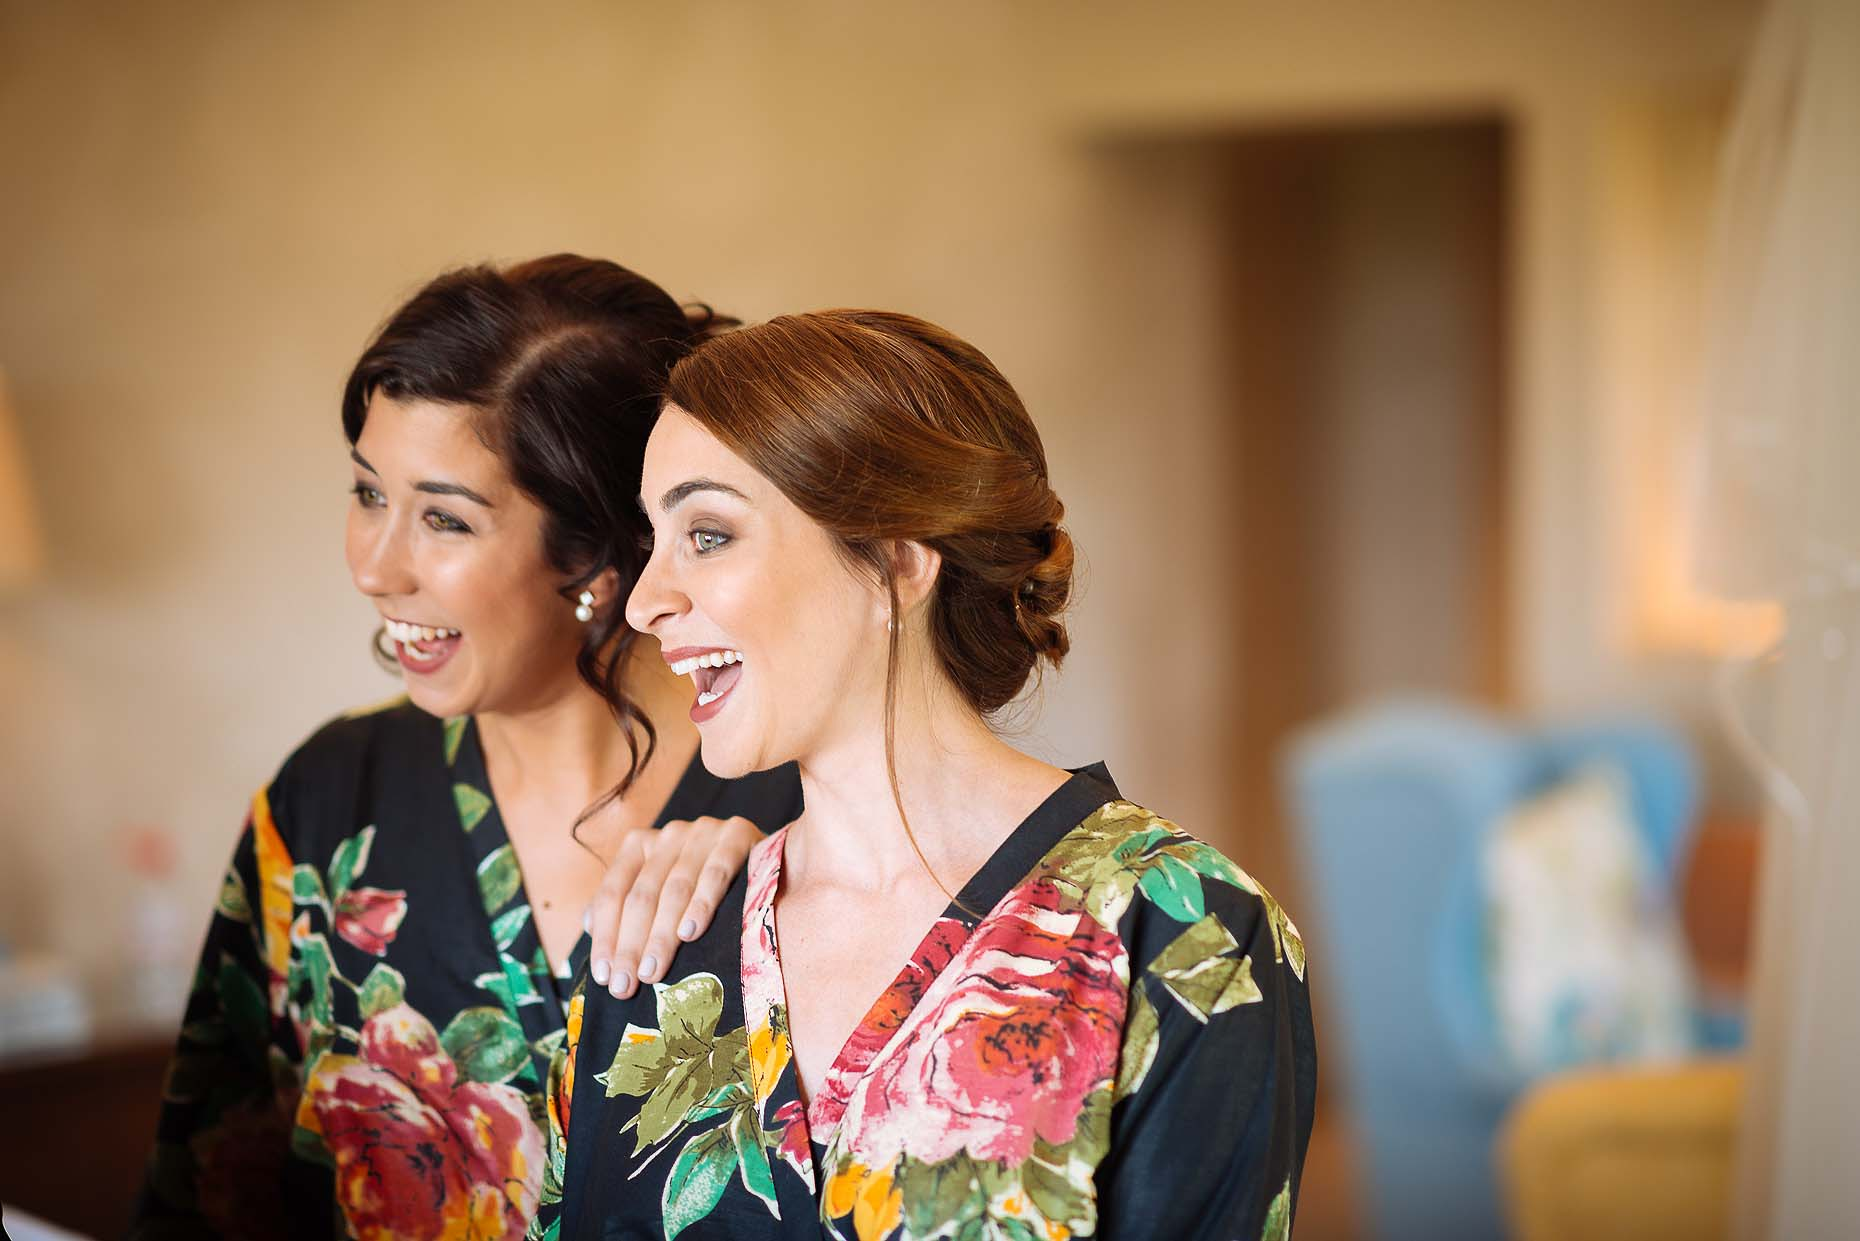 bridesmaids-friends-together-dorset-reportage-wedding-photographer-03